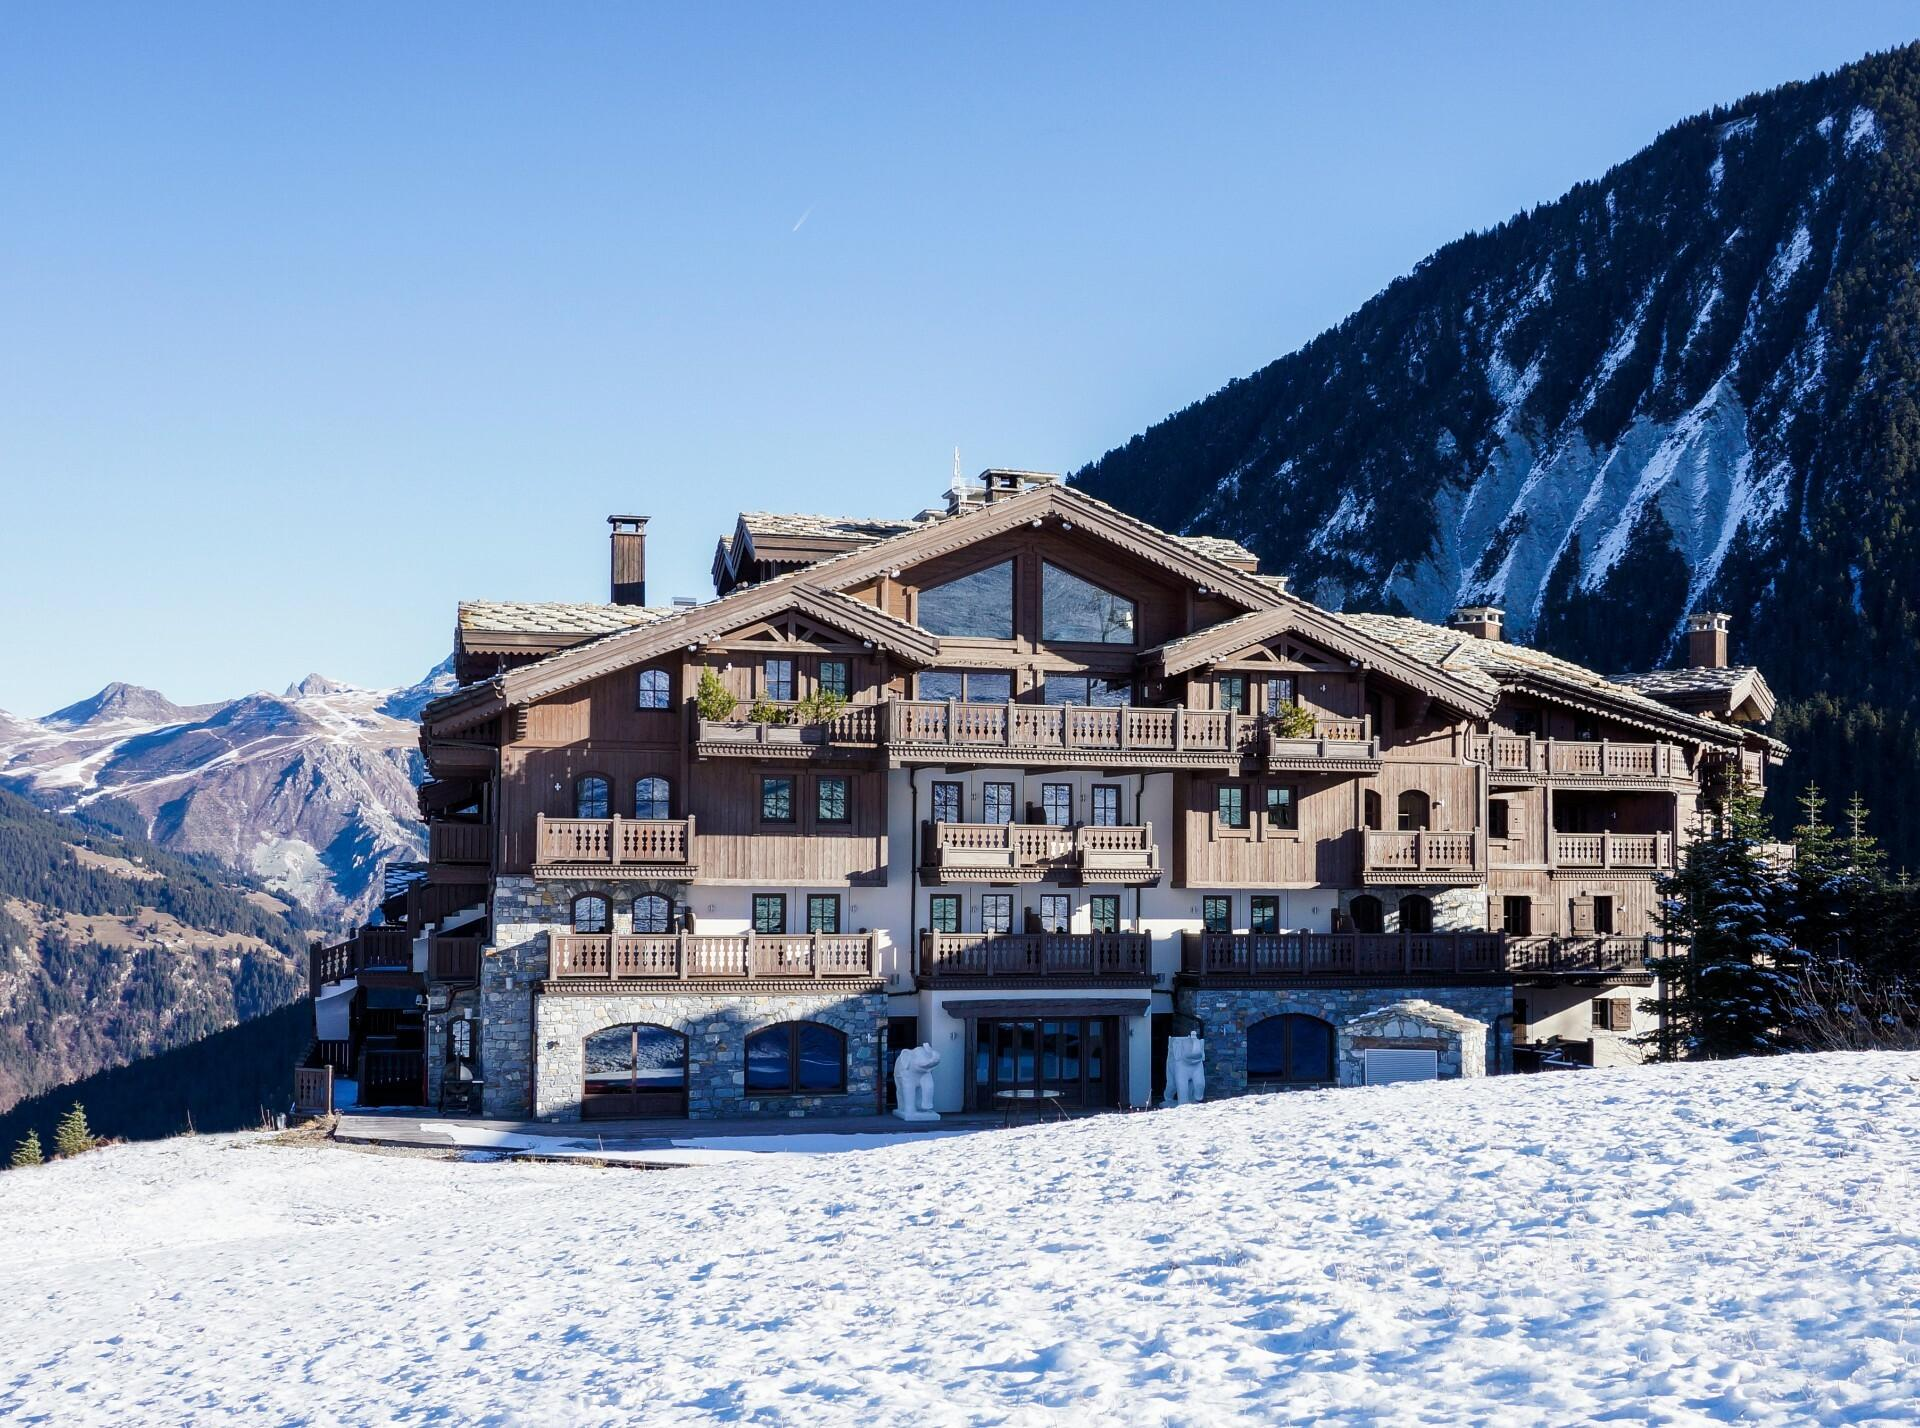 APARTEMENT ON THE SKI SLOPES